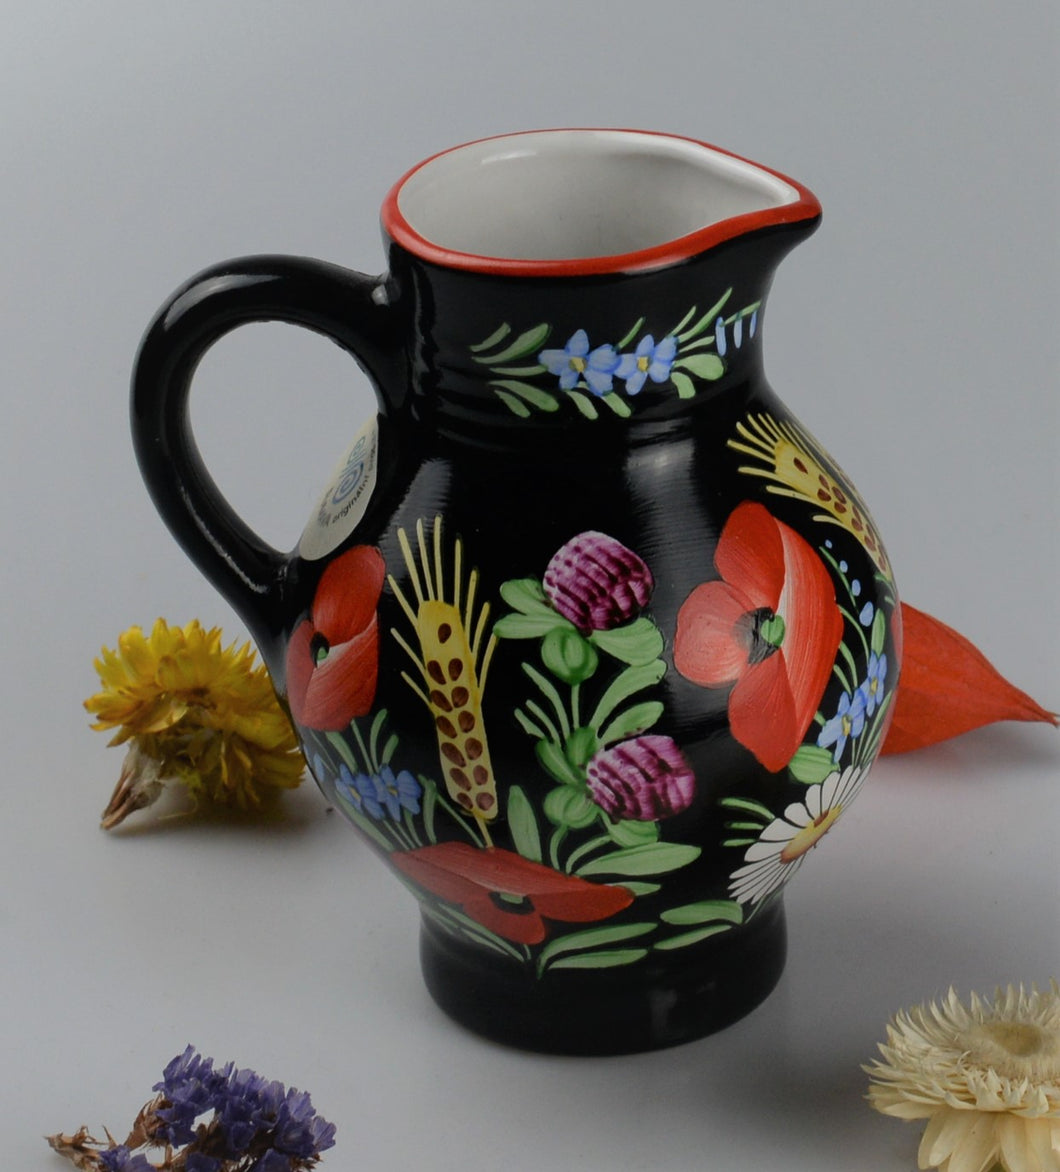 Small jug from traditionnal czech ceramic - black